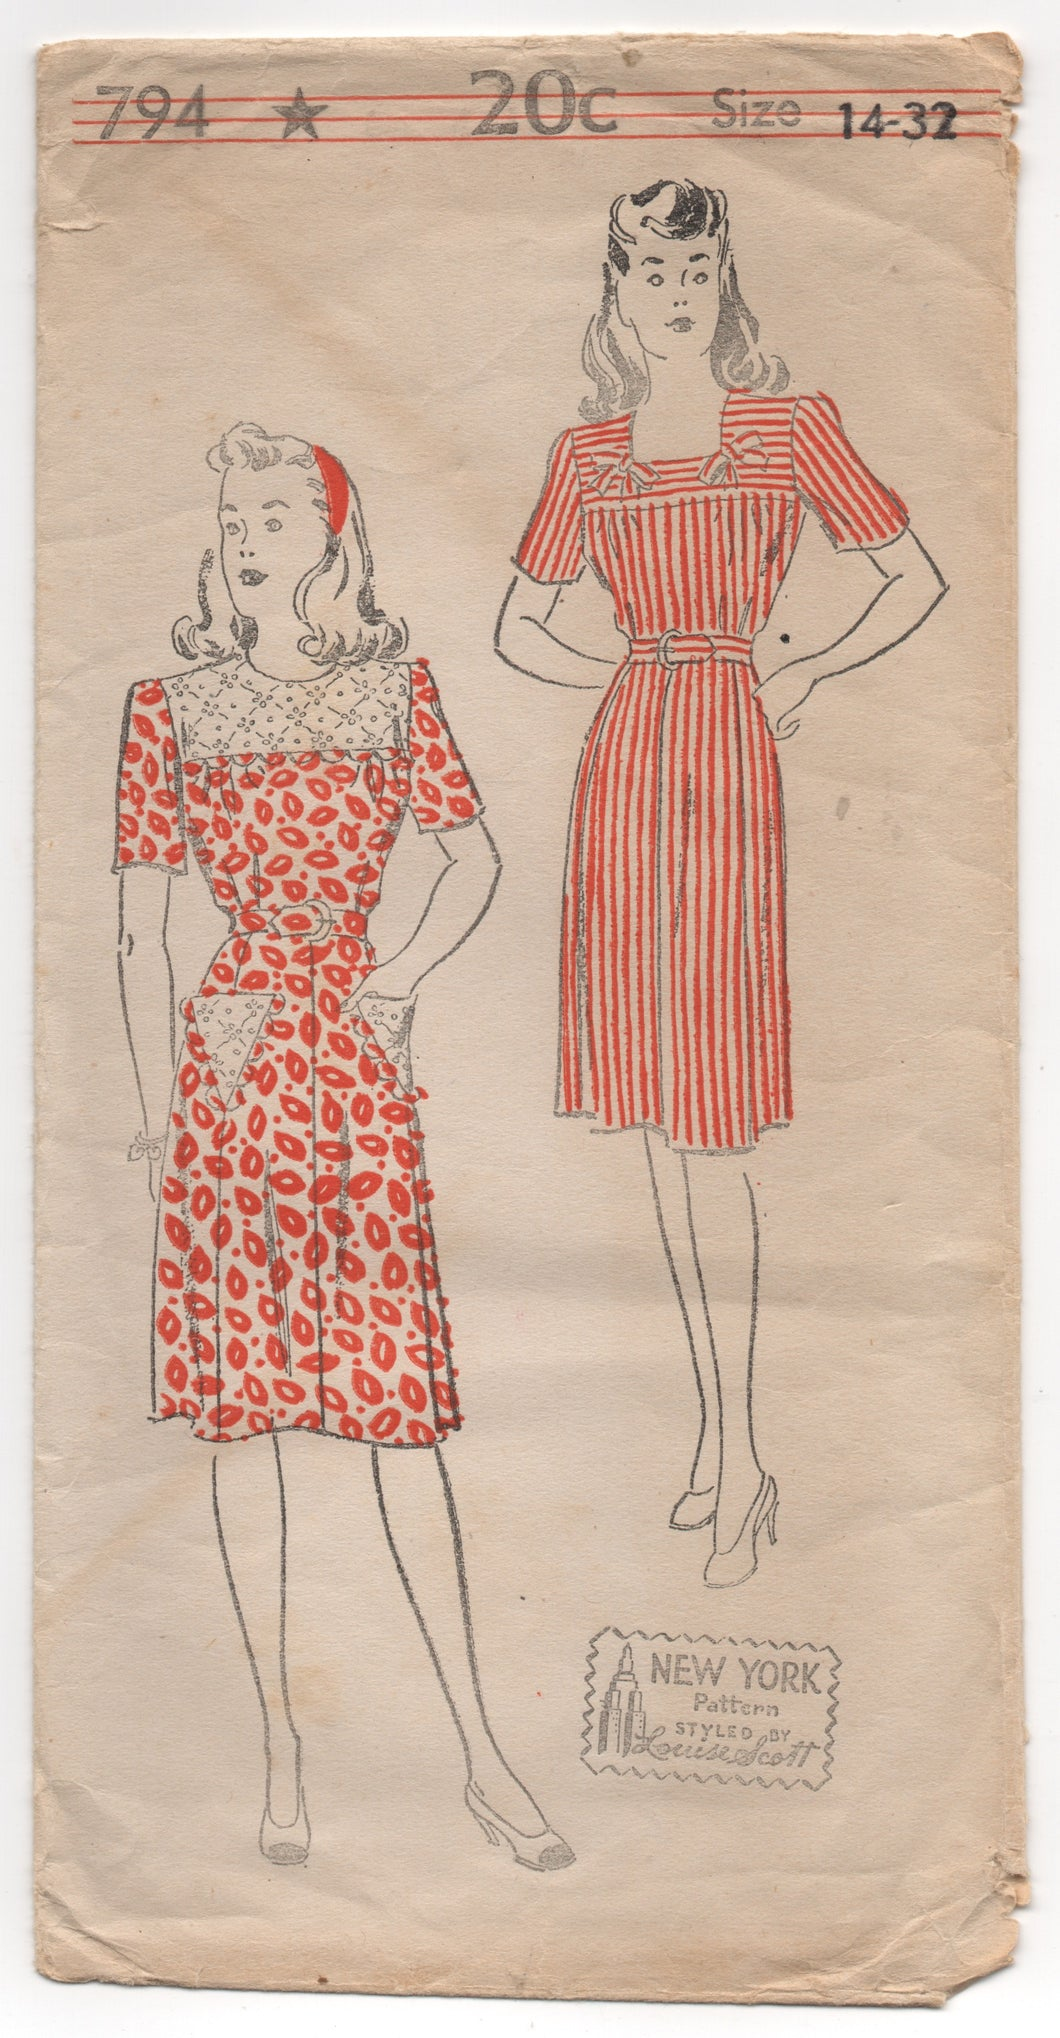 1940's New York One Piece Dress with Square Neckline or high collar - Bust 32